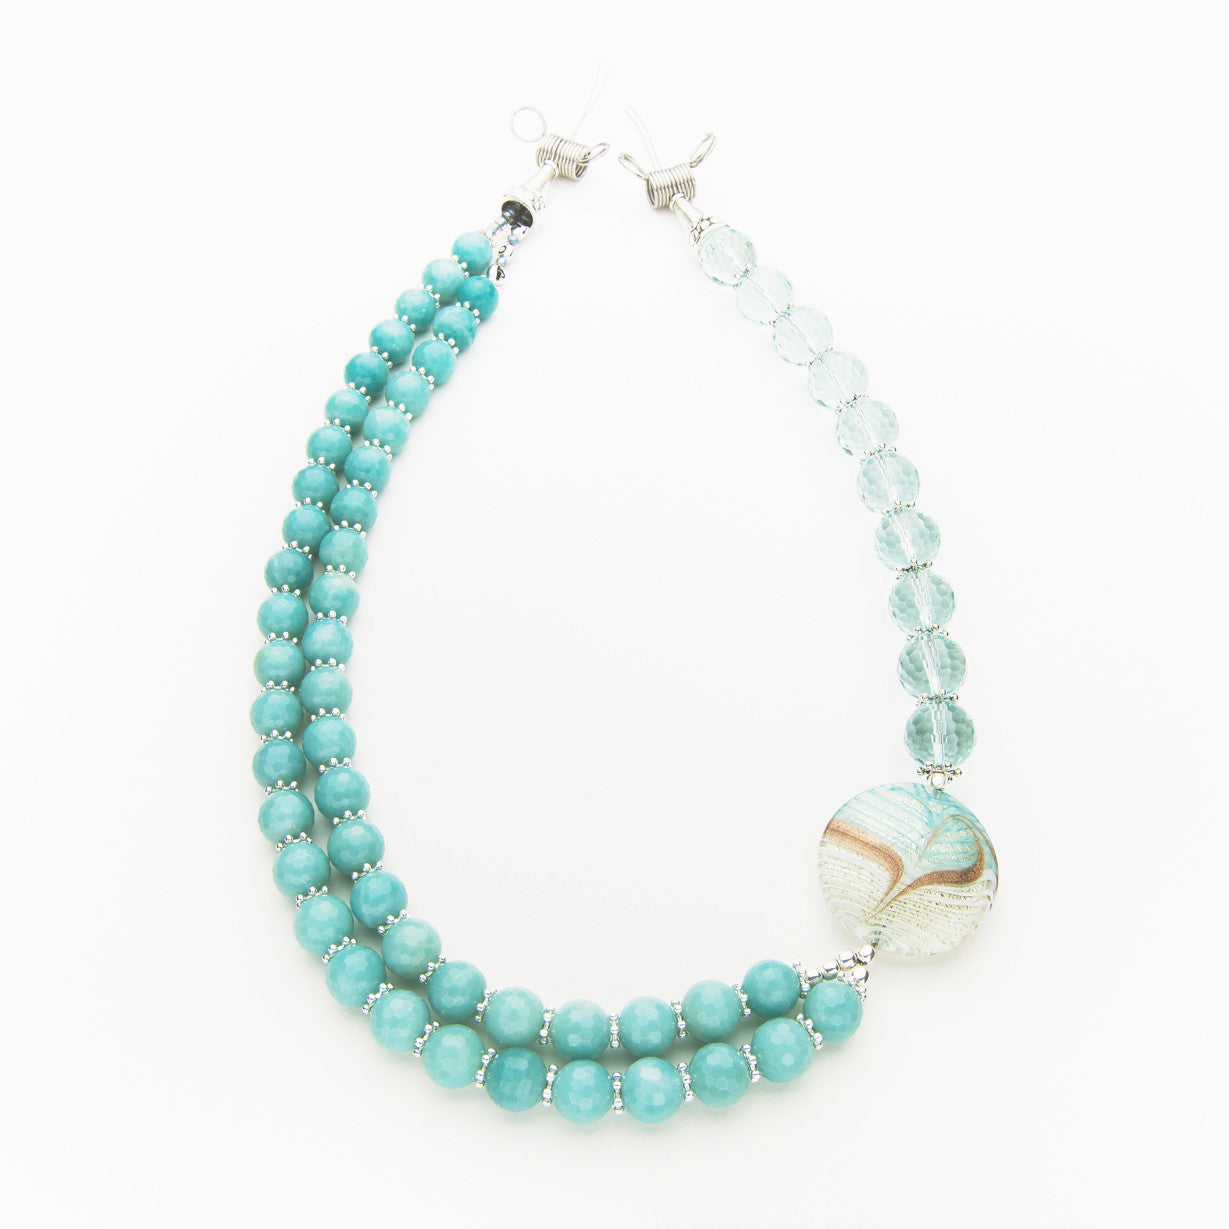 Arete - Amazonite and Blue Crystal Necklace